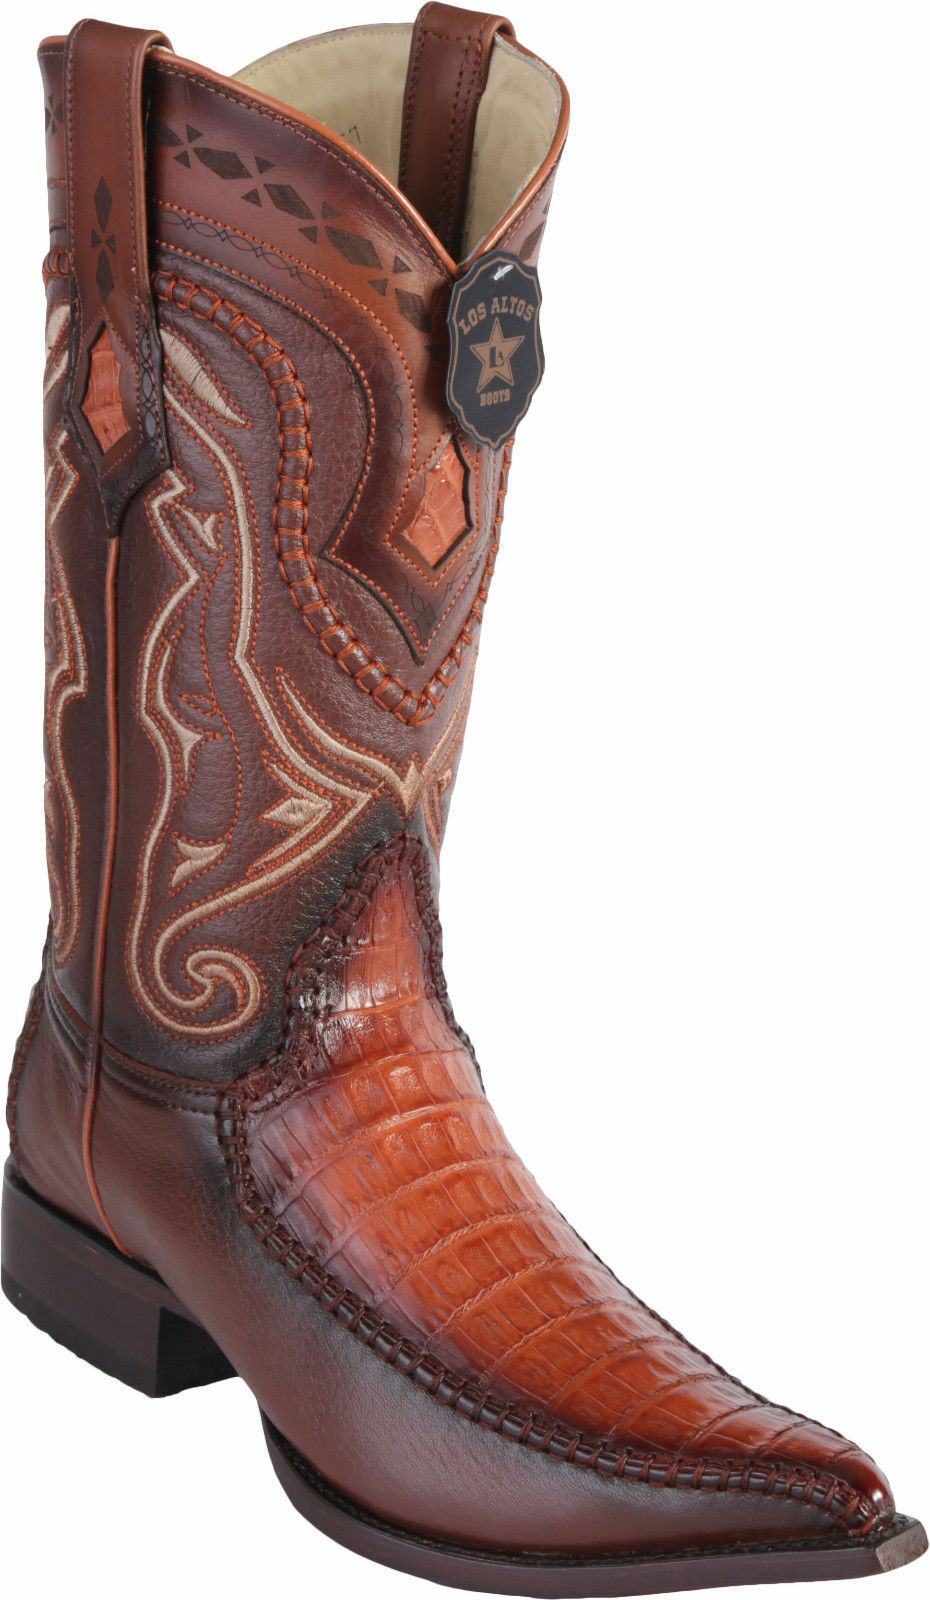 Los Altos Genuine COGNAC Caiman CROCODILE BELLY 3x Toe Western Cowboy Boot EE+